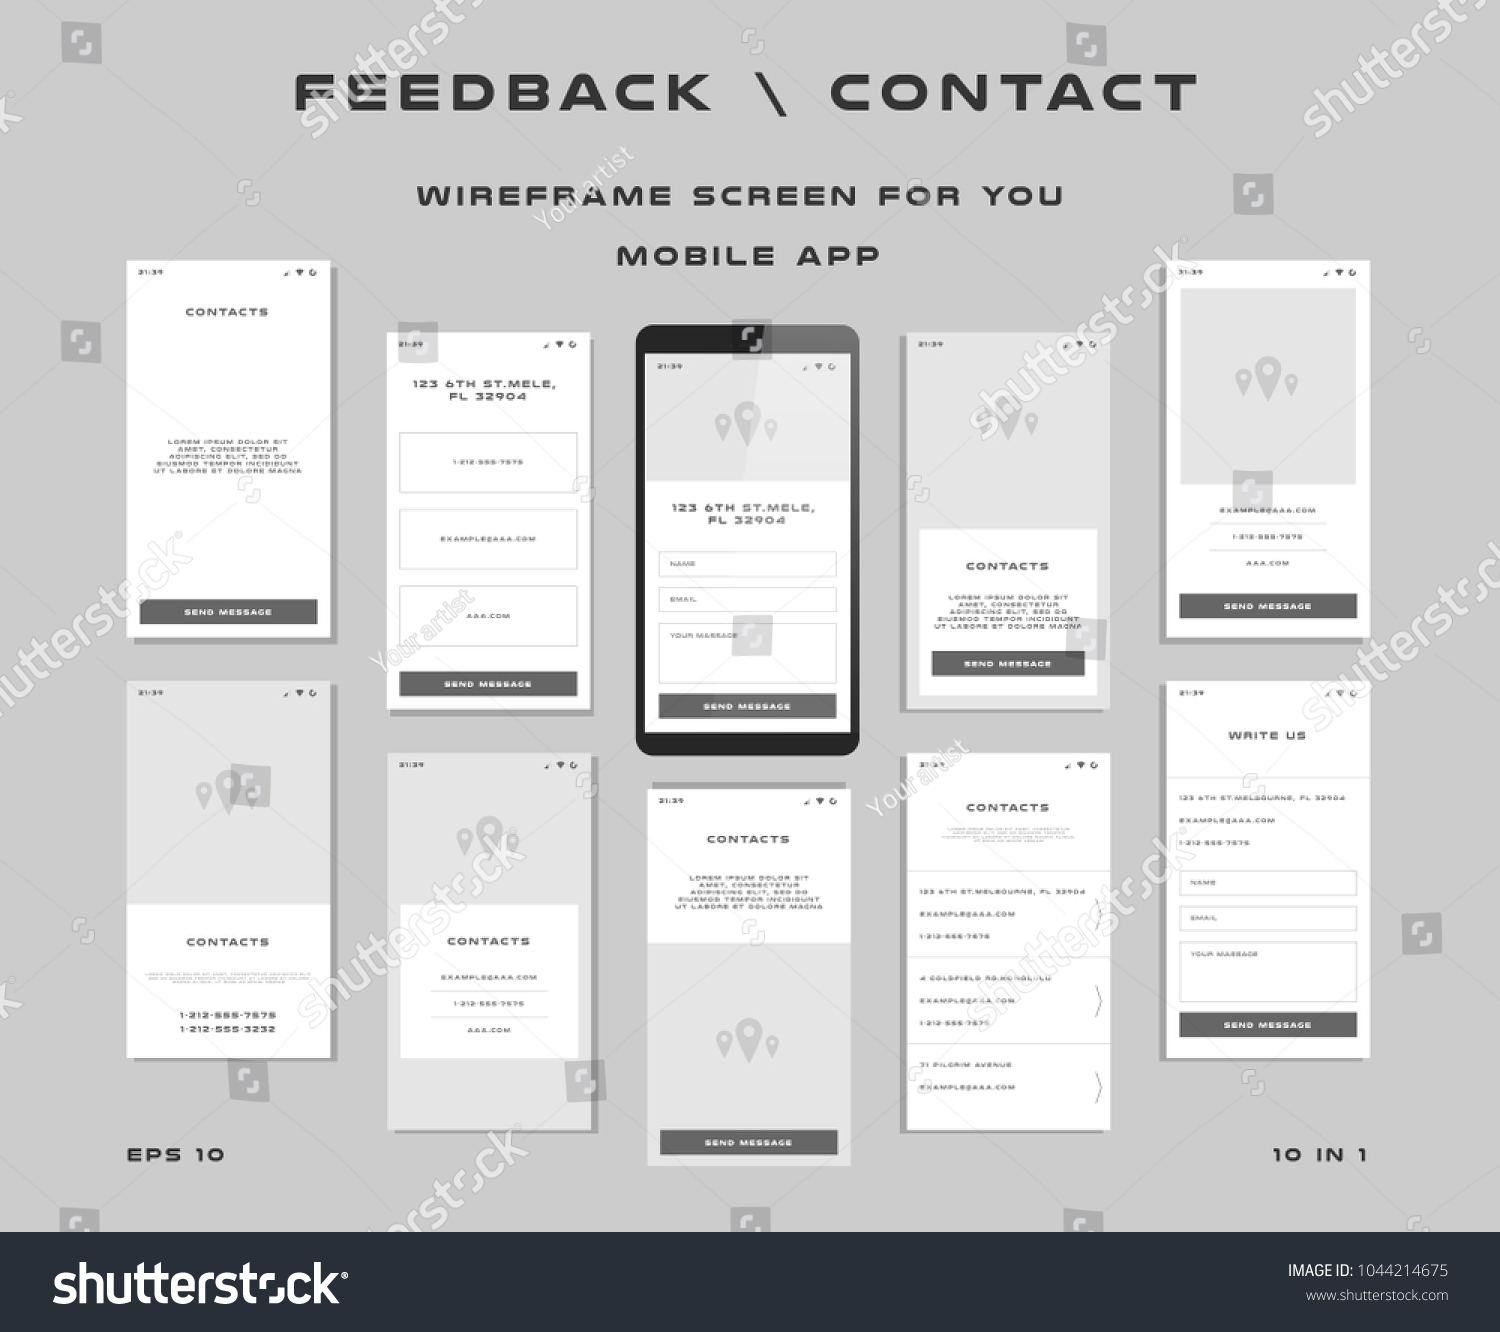 10 1 UI Kits Wireframes Screens Stock Vector 1044214675 - Shutterstock